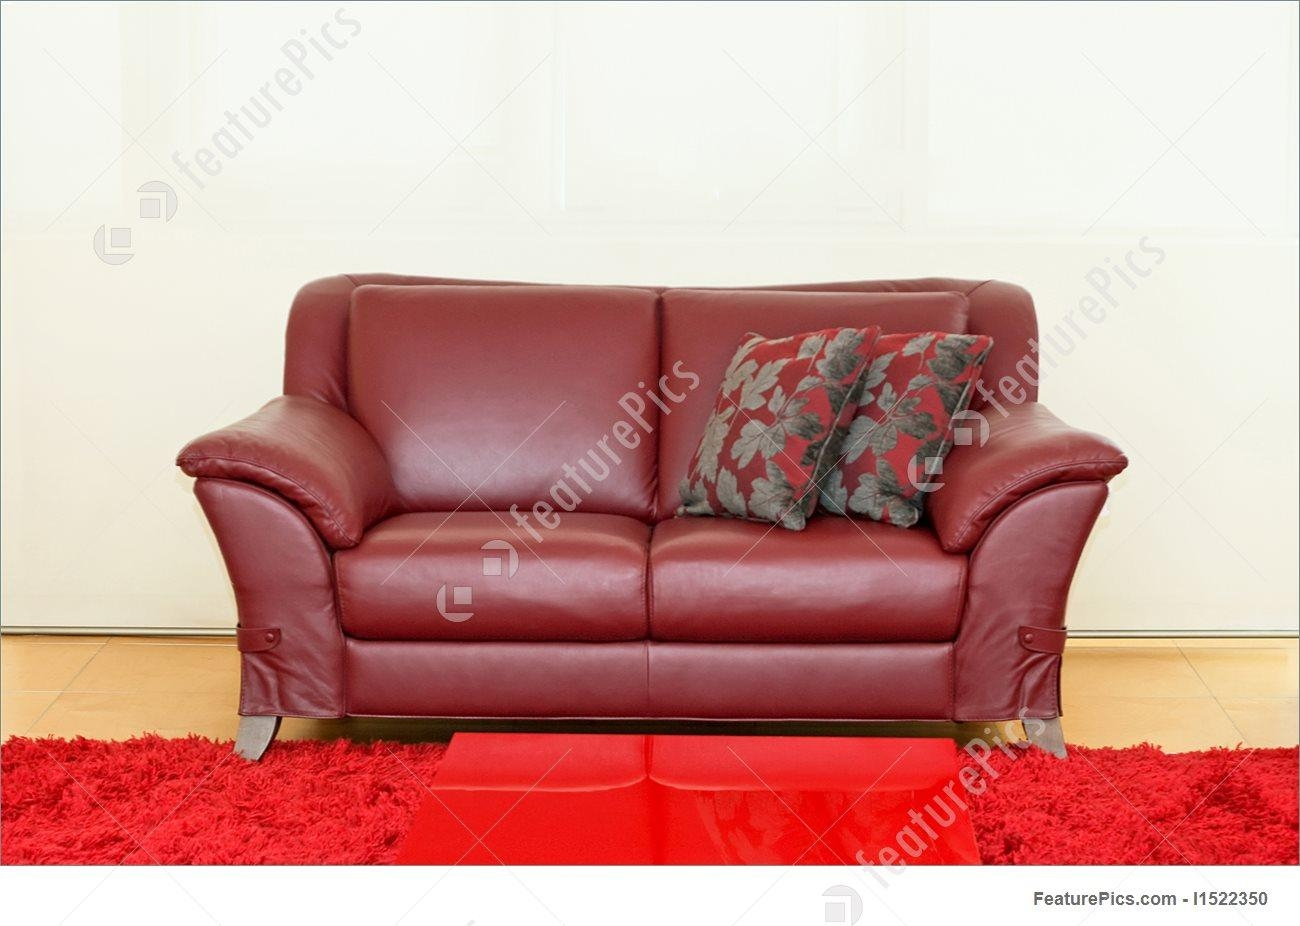 Dark Red Sofa Image With Regard To Dark Red Leather Sofas (Image 8 of 20)